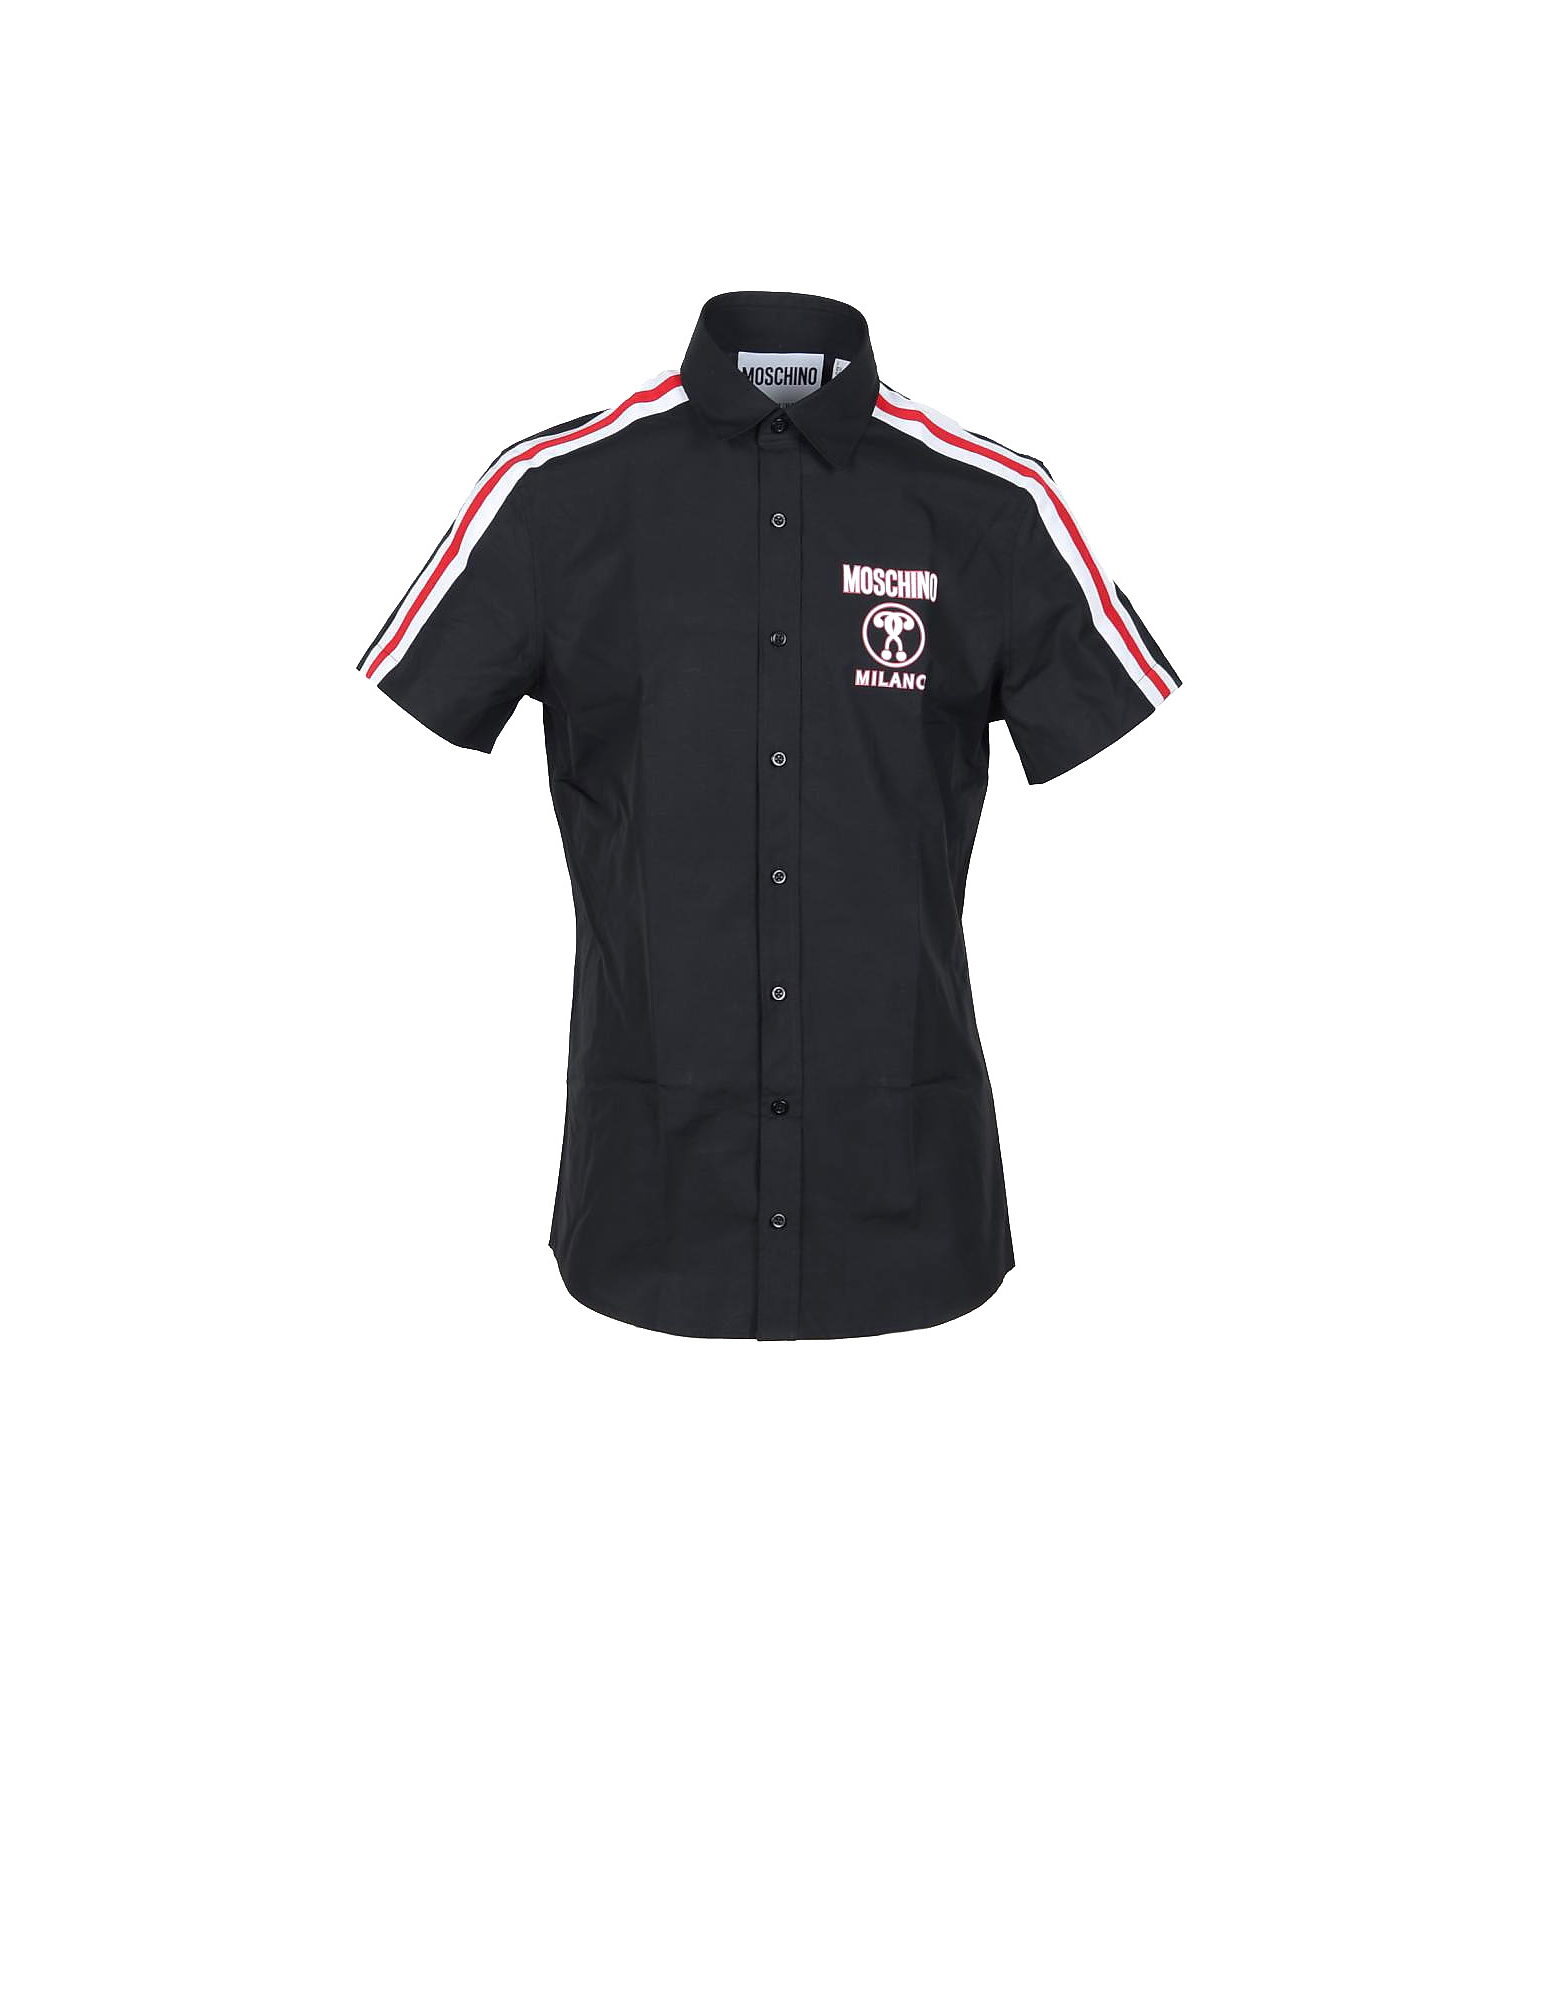 Moschino Designer Shirts, Signature Black Cotton Striped and Signature Short Sleeve Men's Shirt